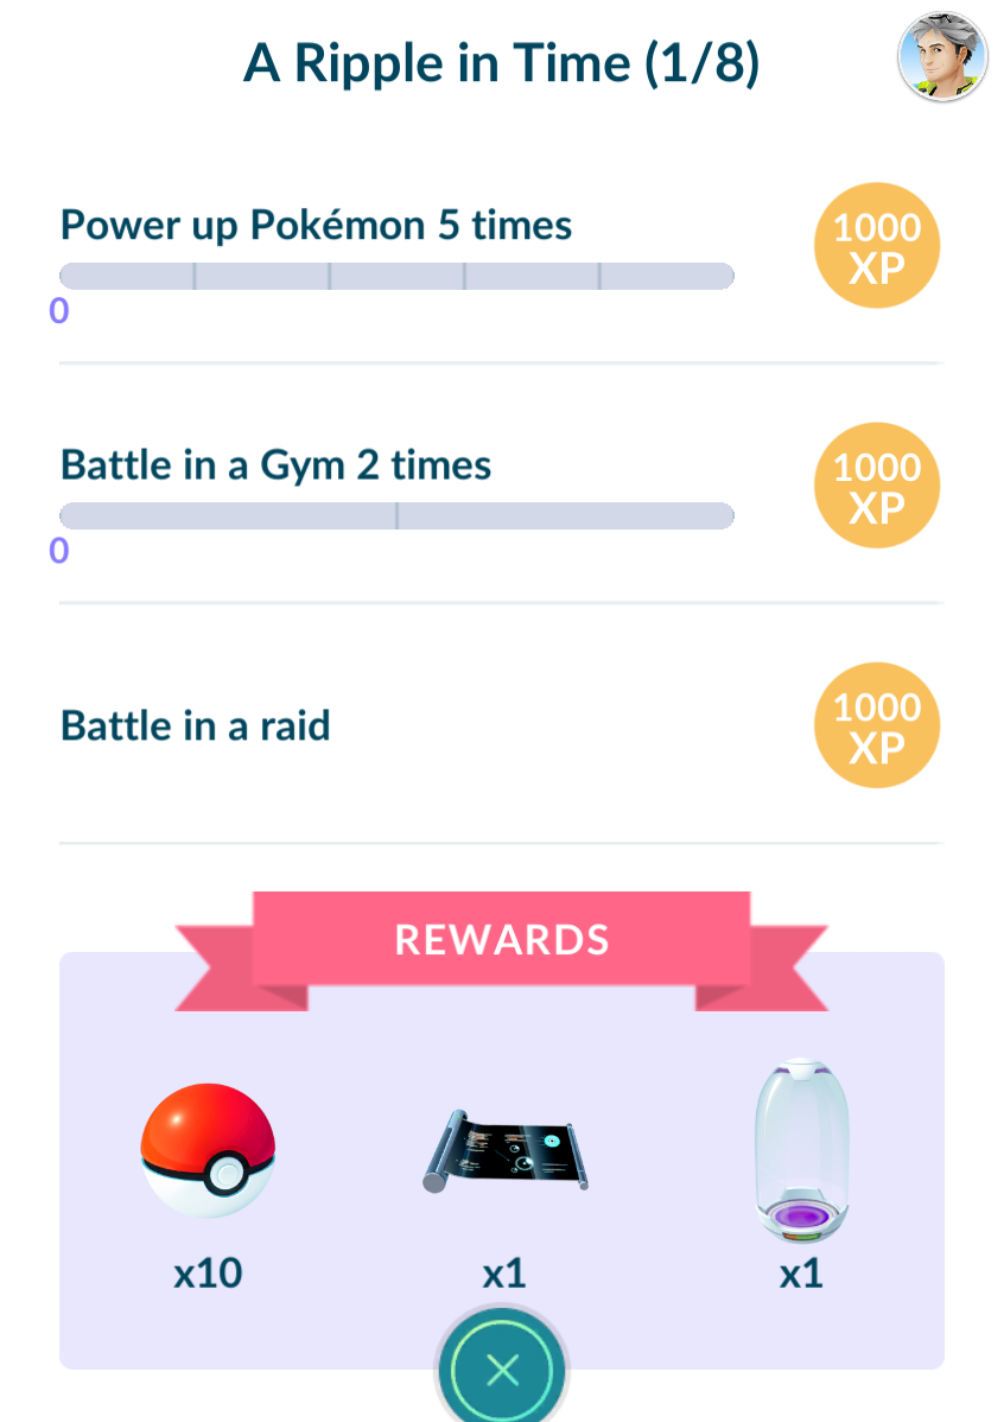 A Ripple in Time - Celebi Pokemon Go Quest Special Research